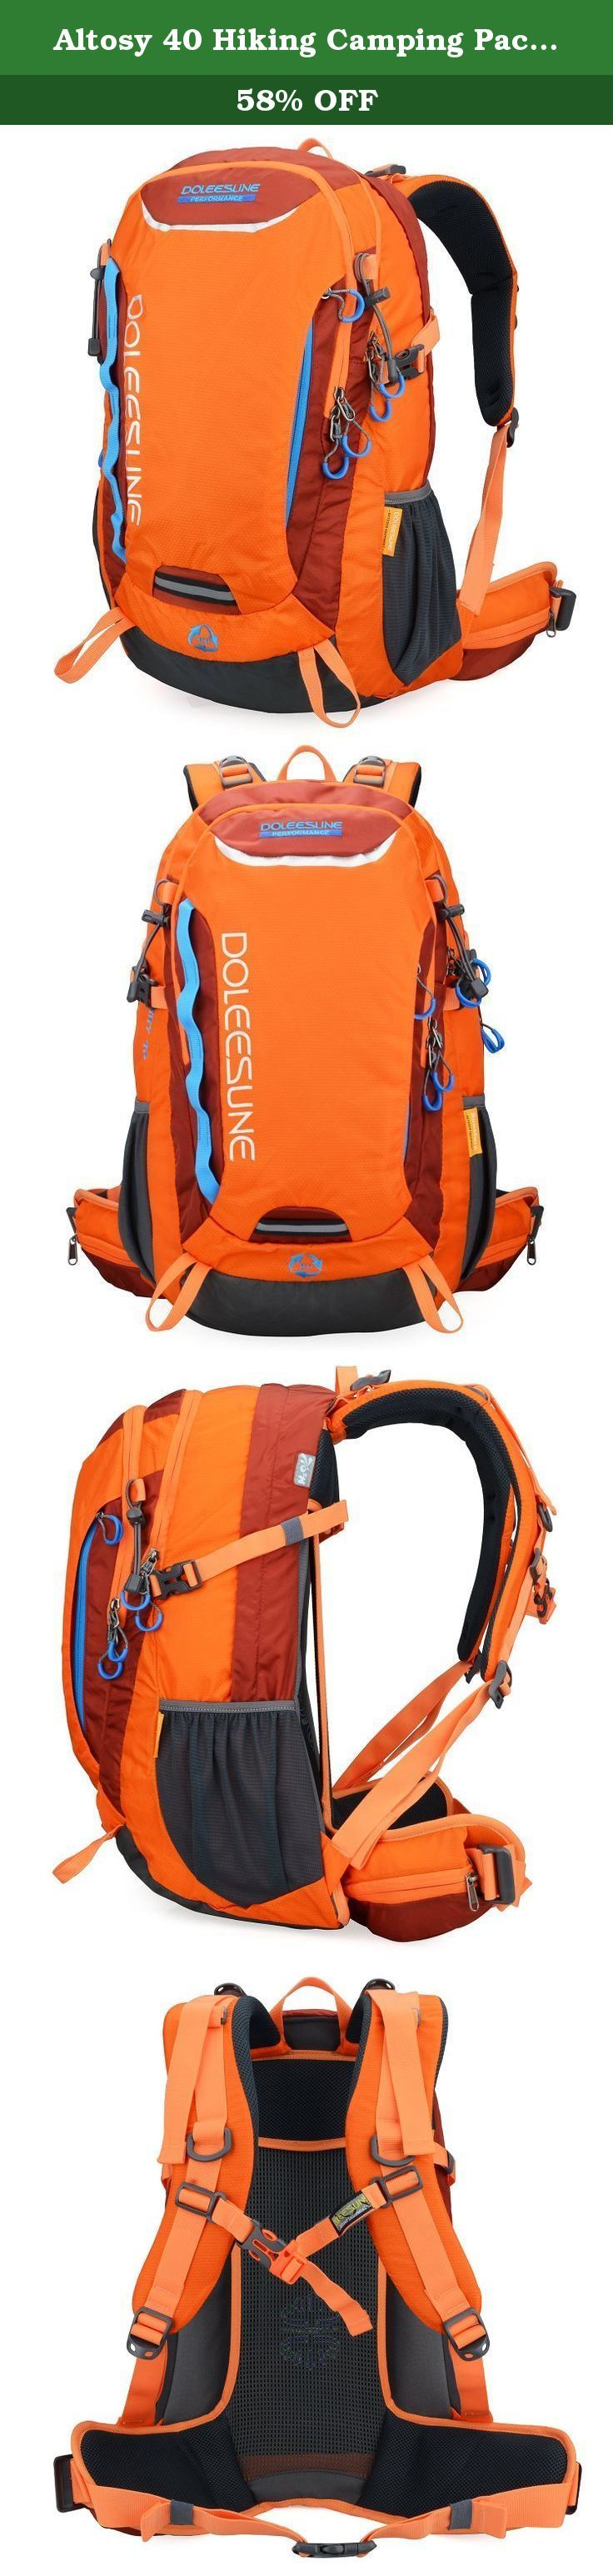 Altosy 40 Hiking Camping Pack Cycling Hiking Backpack Water-resistant Daypack 9653 (Orange, 40l). About DOLEESUNE Welcome to Doleesune Amazon Official Store, Doleesune is always committed to designing and producing high quality backpacks. Based on our high quality and good customer service, Doleesune have already supported for hundreds of thousands customers all over the world and win many customer's love and trust. Doleesune is the thing you absolutely worth to have. Product Description...